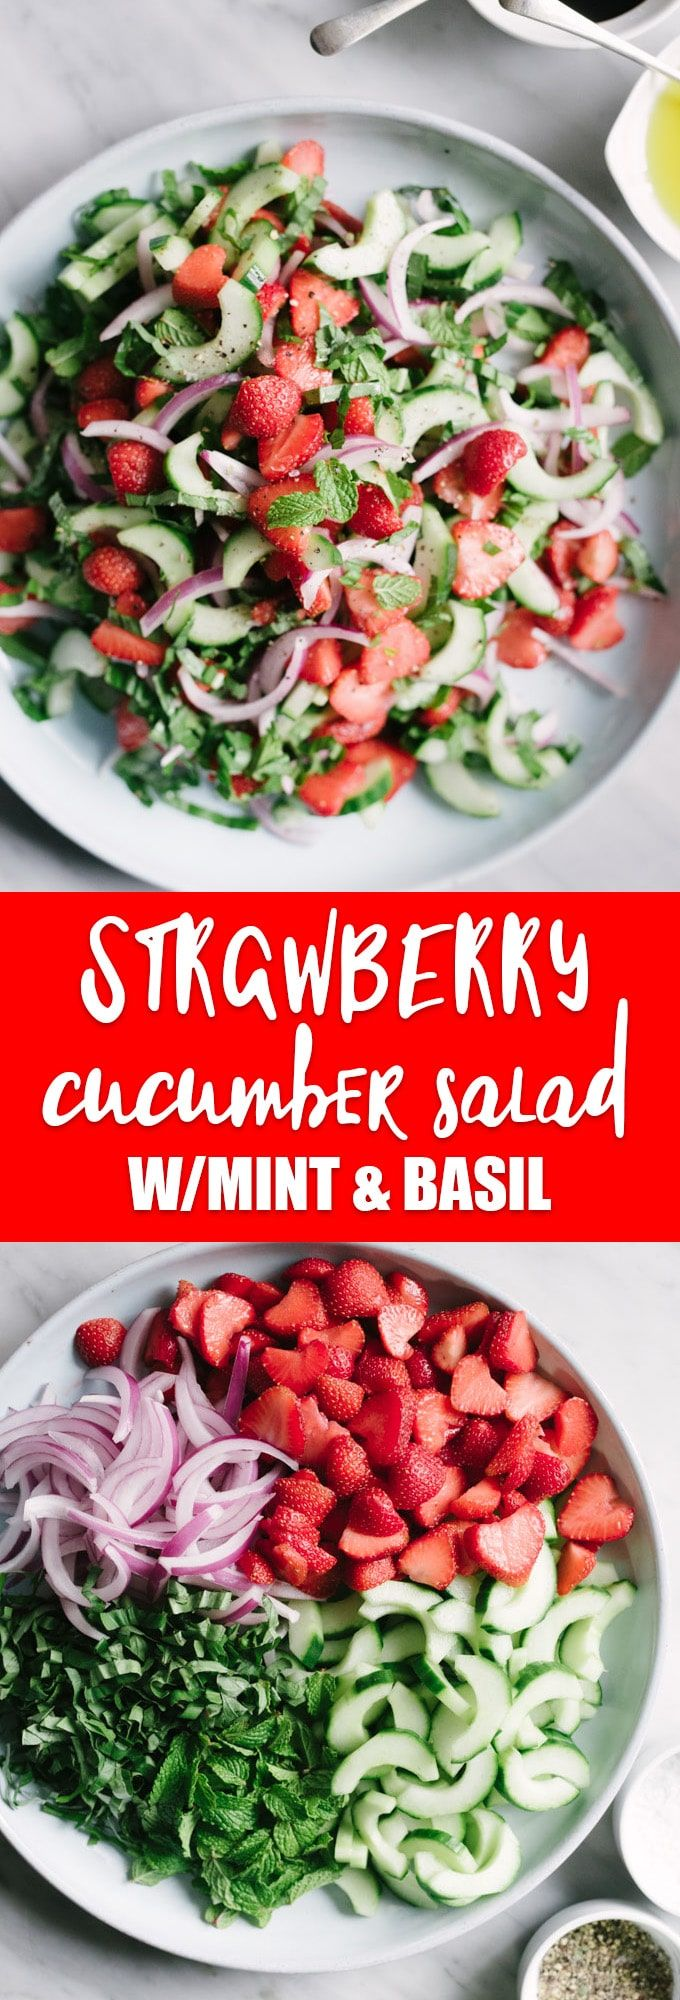 This vegan strawberry cucumber salad is spring produce at its best. Sweet, crispy, crunchy, and so satisfying. #vegan #vegetarian #wholefoods #realfood #raw #paleo